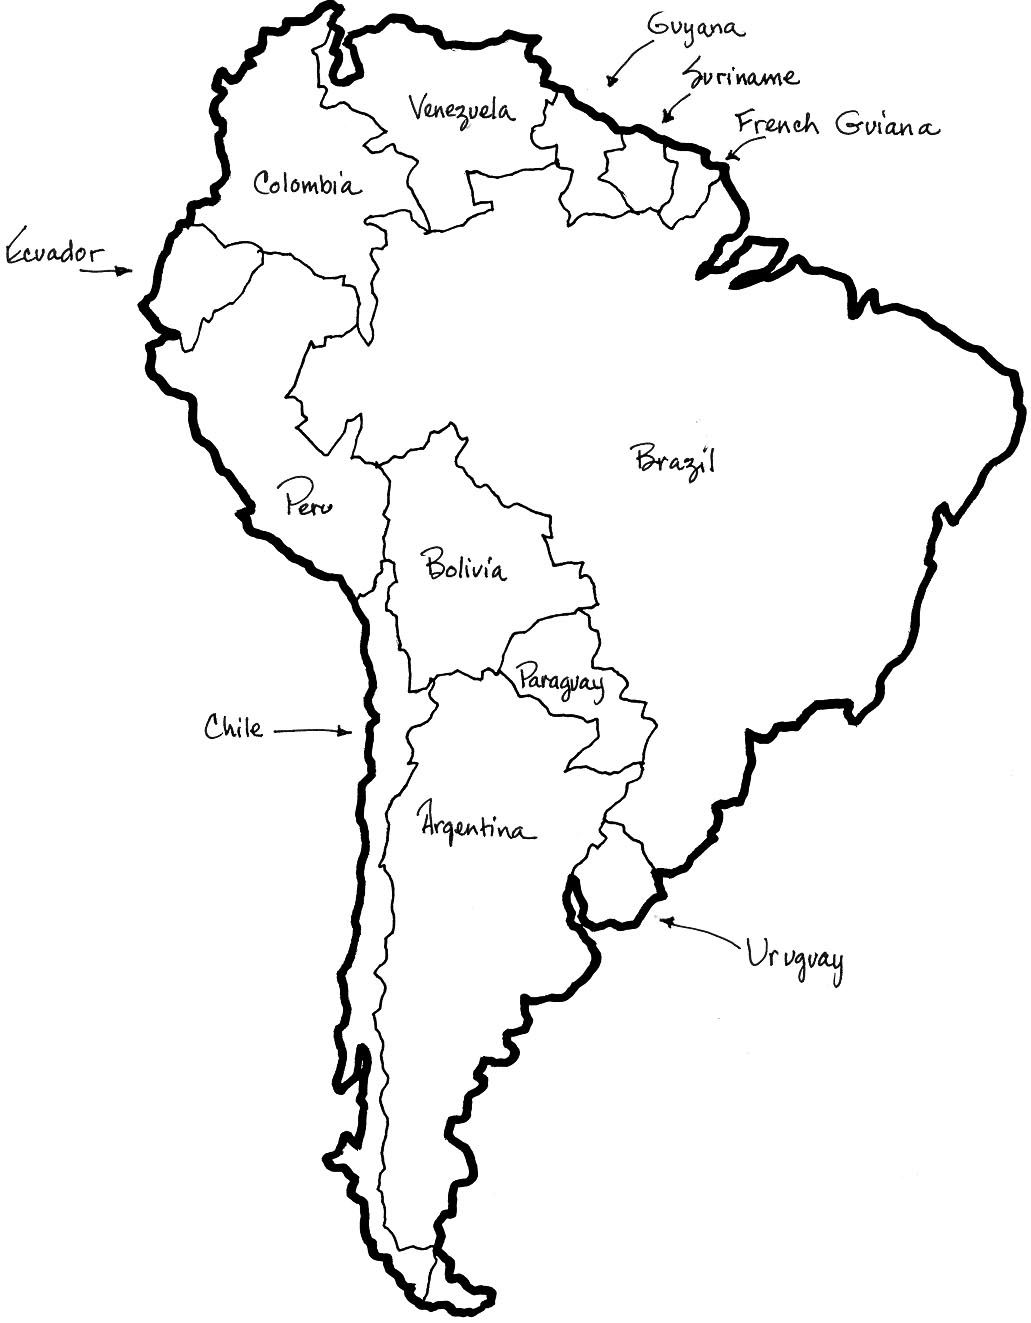 medium resolution of Pin by Priscilla Hicks on South America \u0026 ...   Latin america map